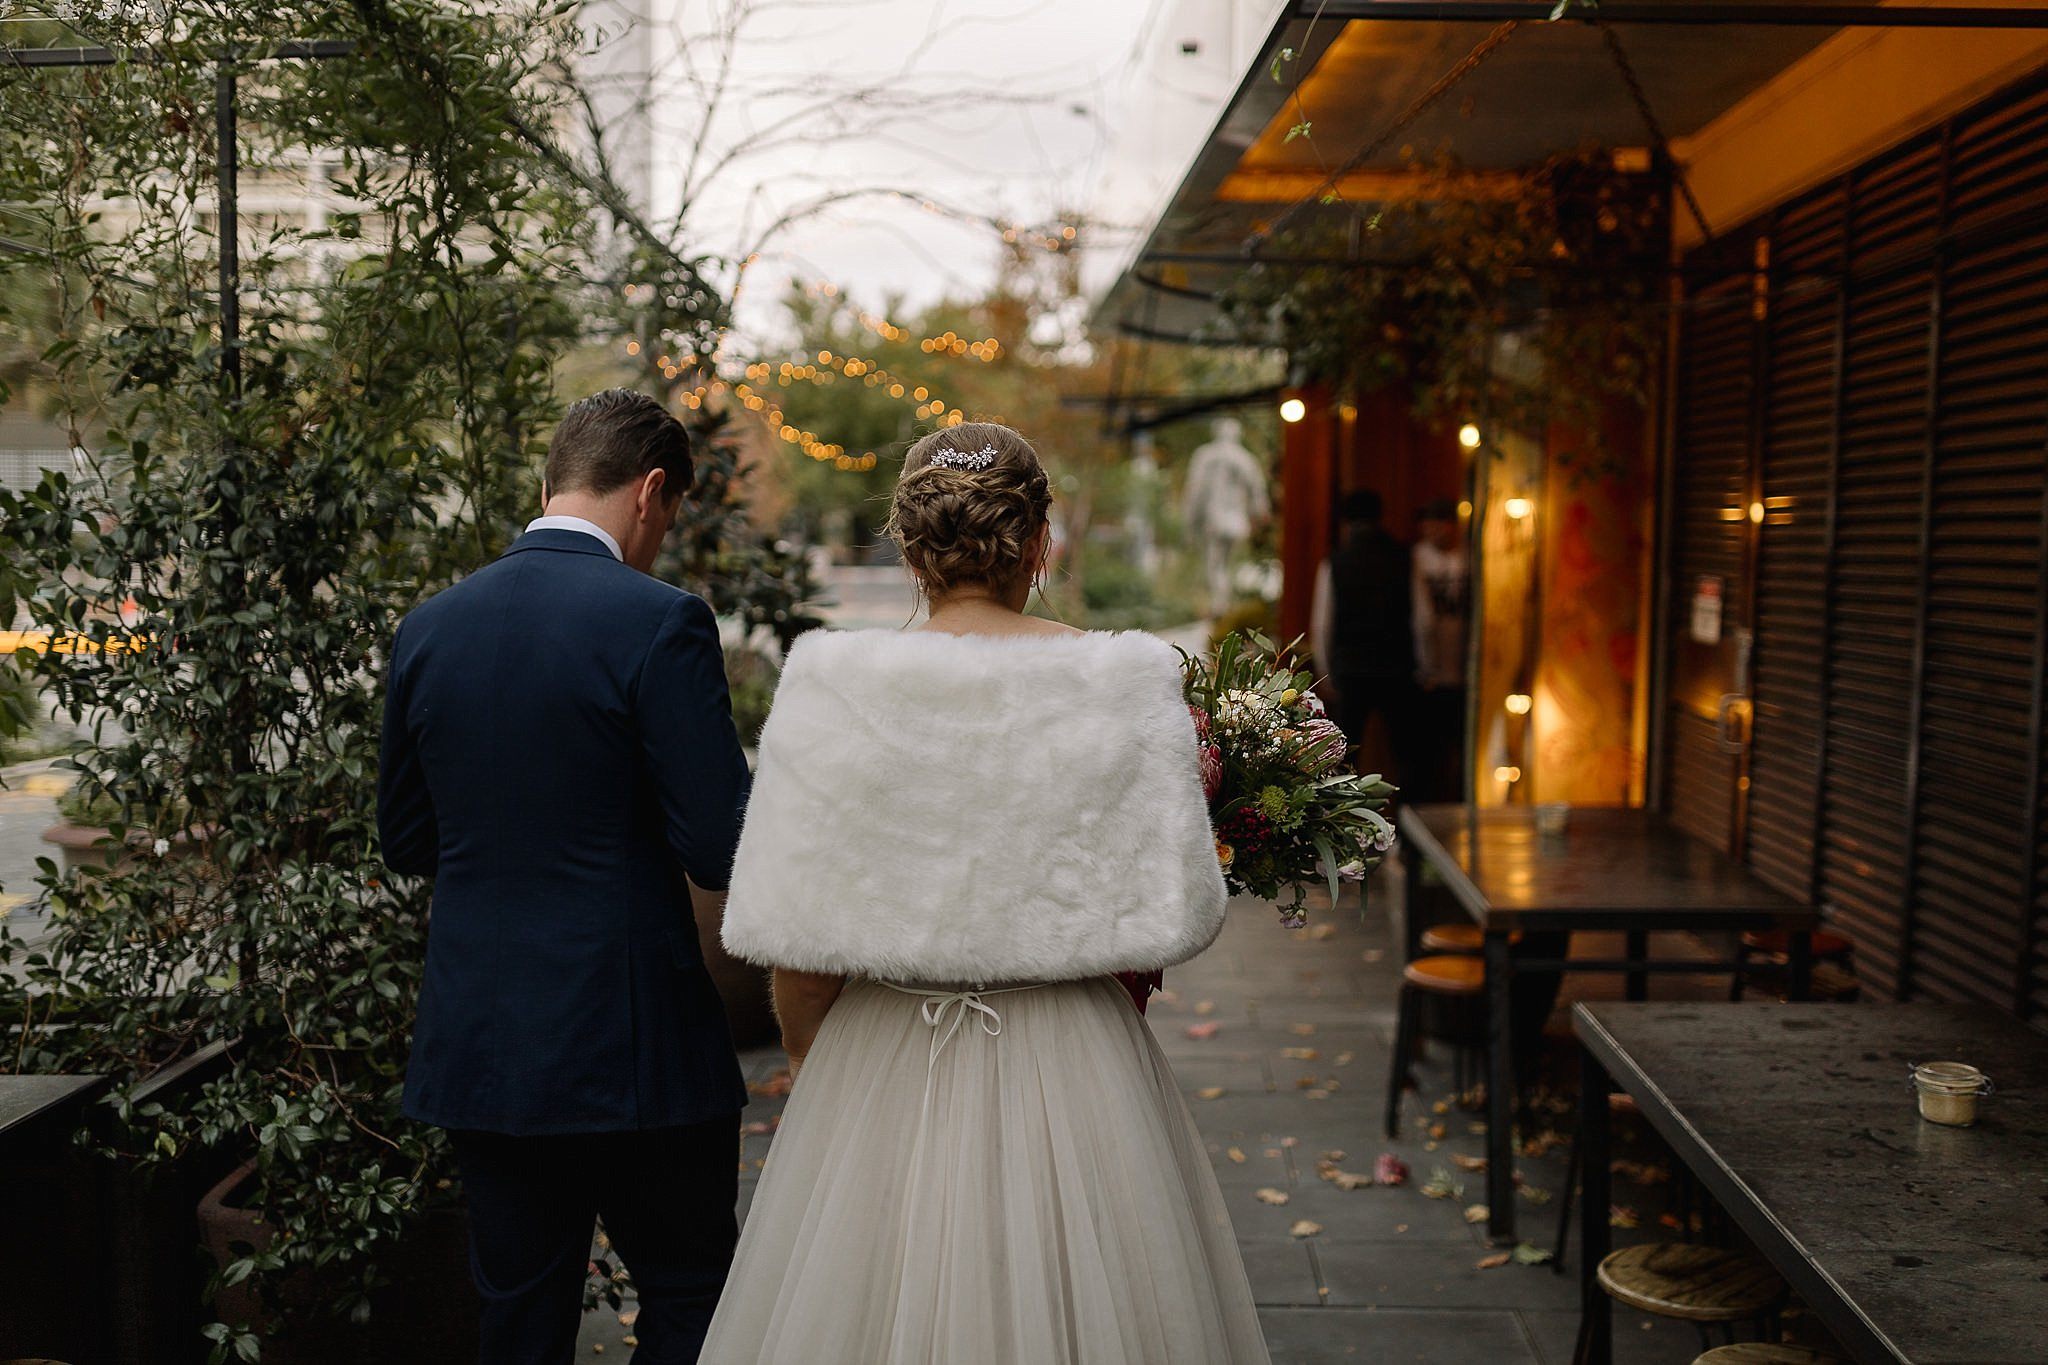 Keepsakephoto by the Keeffes,ACT wedding photographer,ACT weddings,canberra wedding,Canberra Wedding Photographer,Canberra Wedding Photography,canberra weddings,Parlour,Parlour Wine room wedding,Nishi gallery wedding,New Acton,Canberra Urban Wedding,